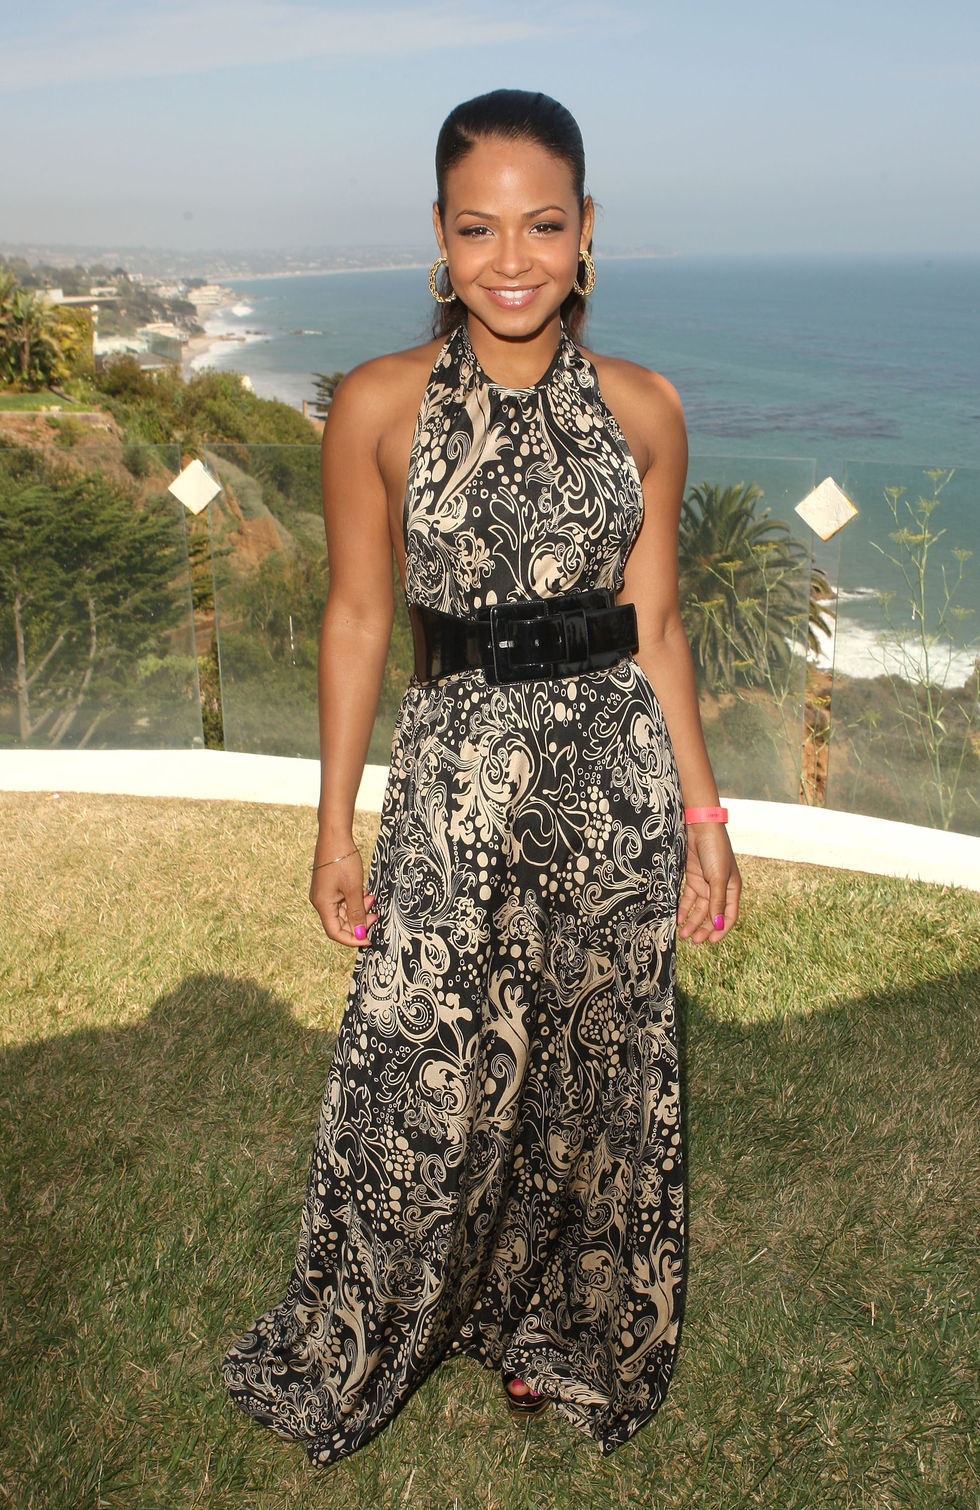 christina-milian-at-project-beach-house-in-malibu-01